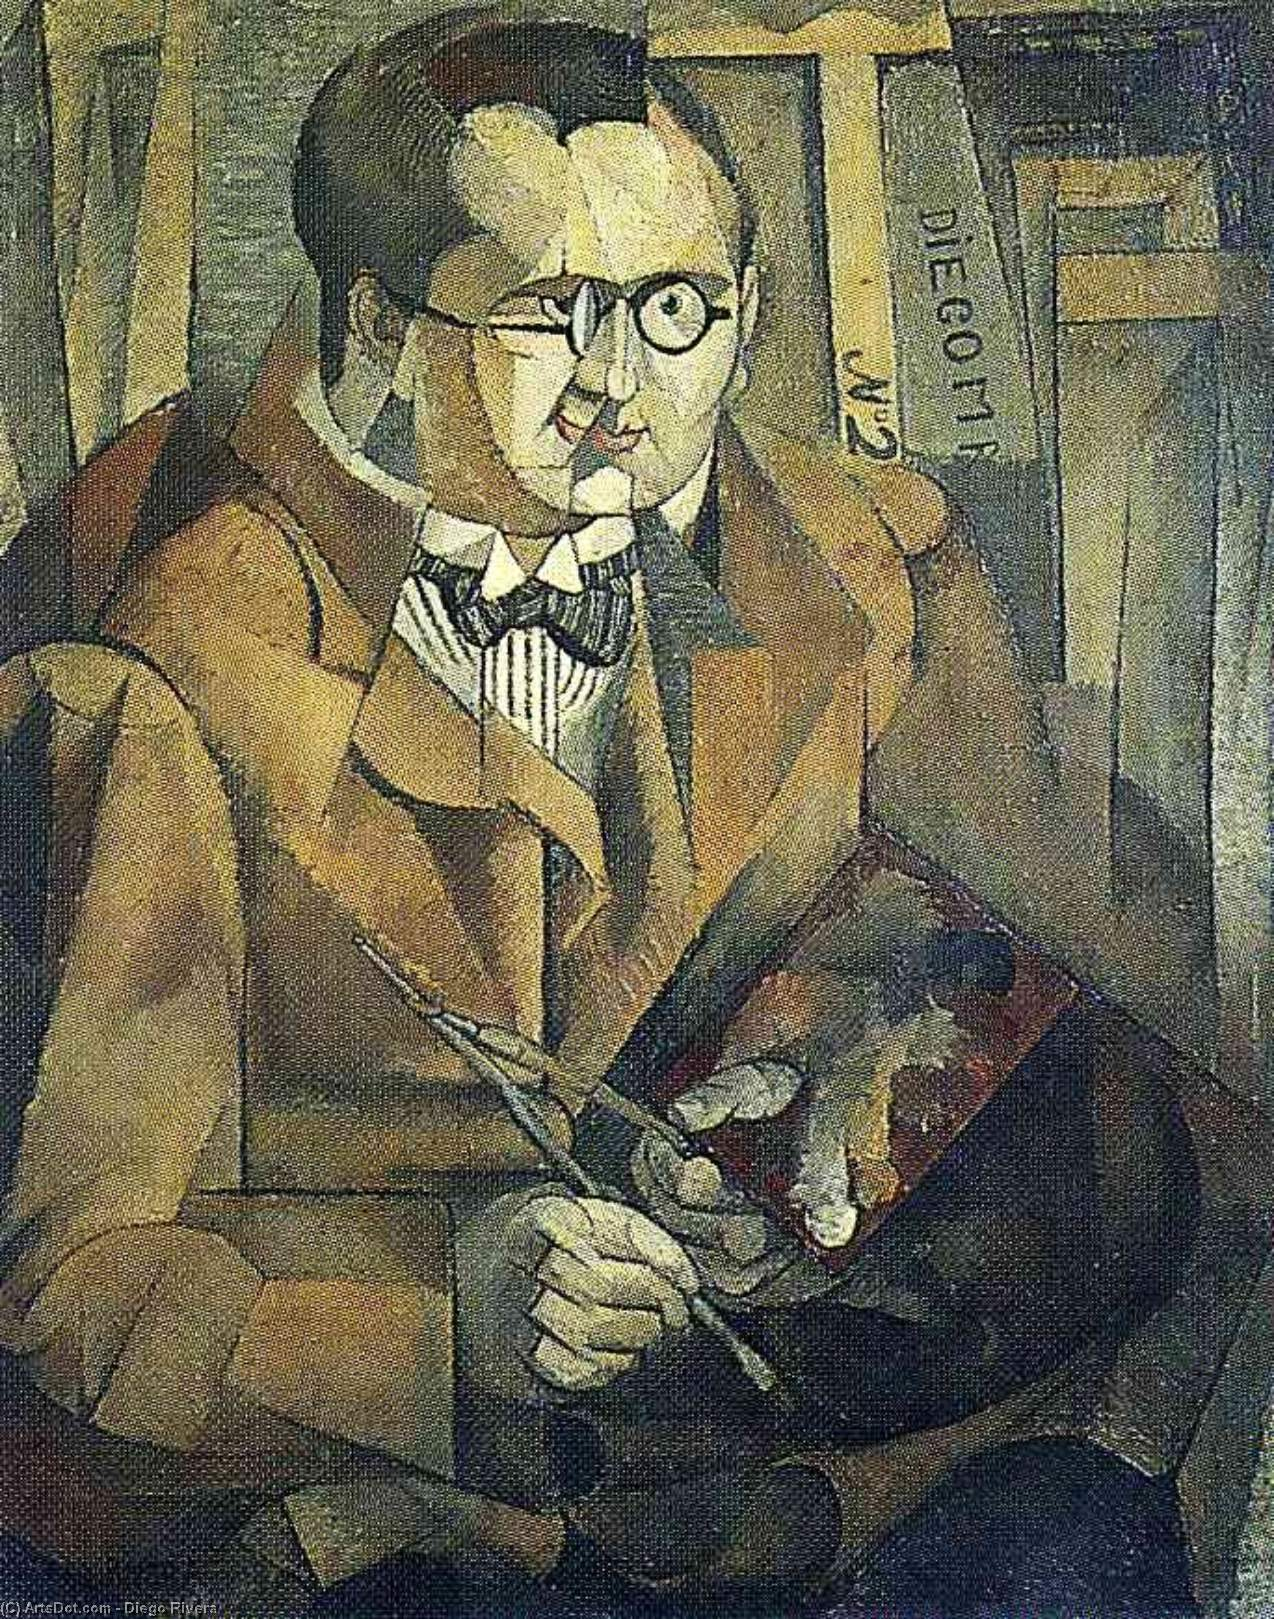 untitled (252) by Diego Rivera (1886-1957, Mexico)